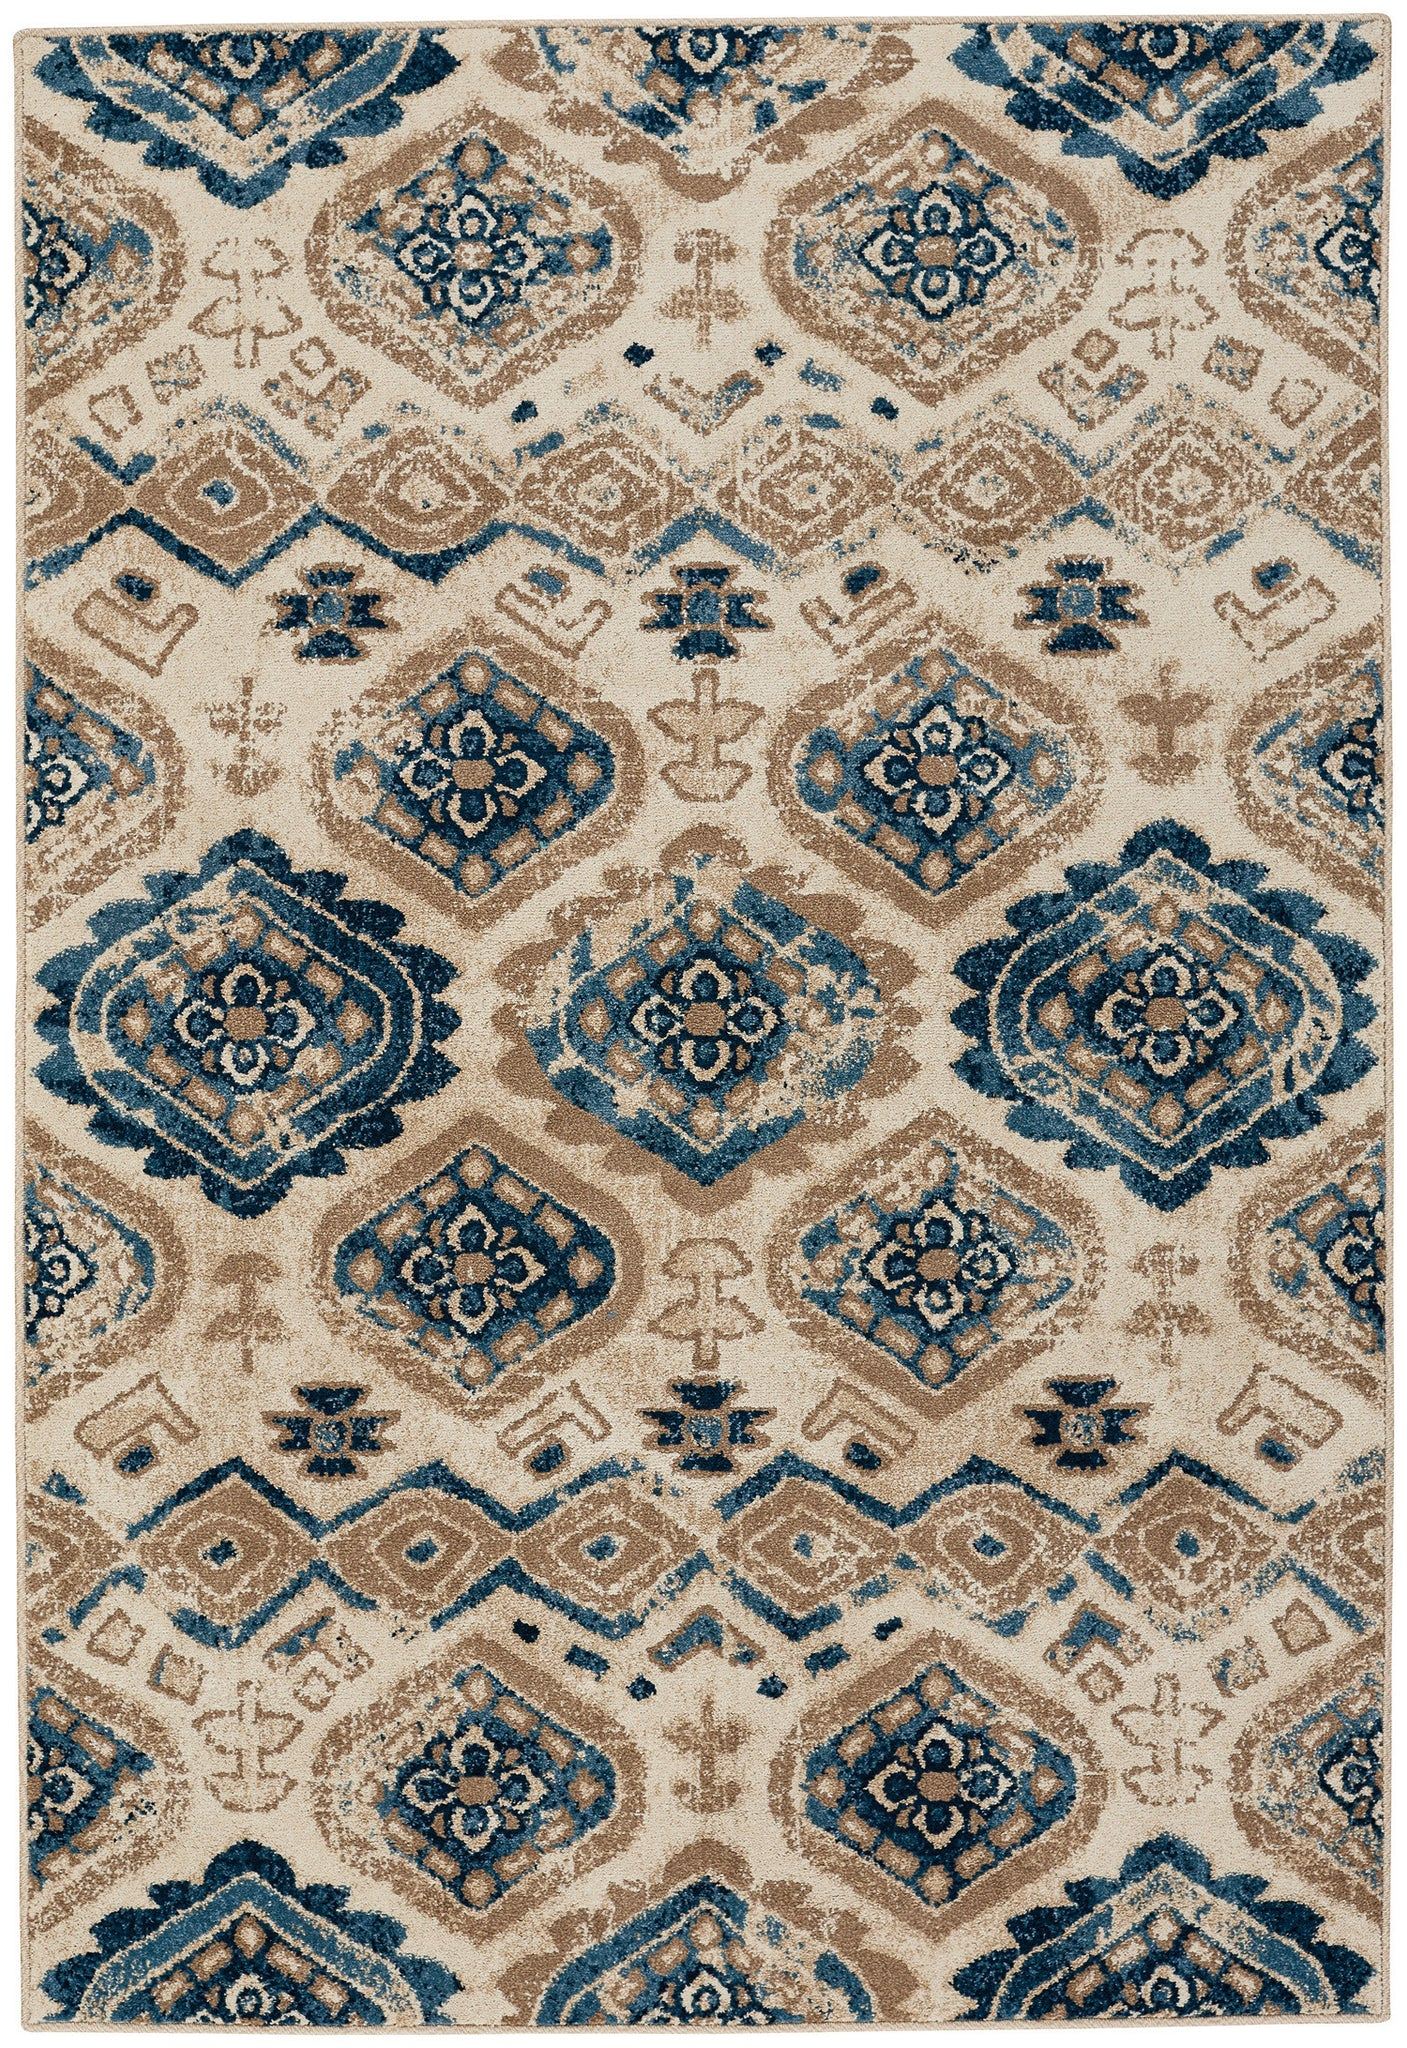 Capel Bethel Diamond 2462 Taupe Blue 640 Area Rug main image